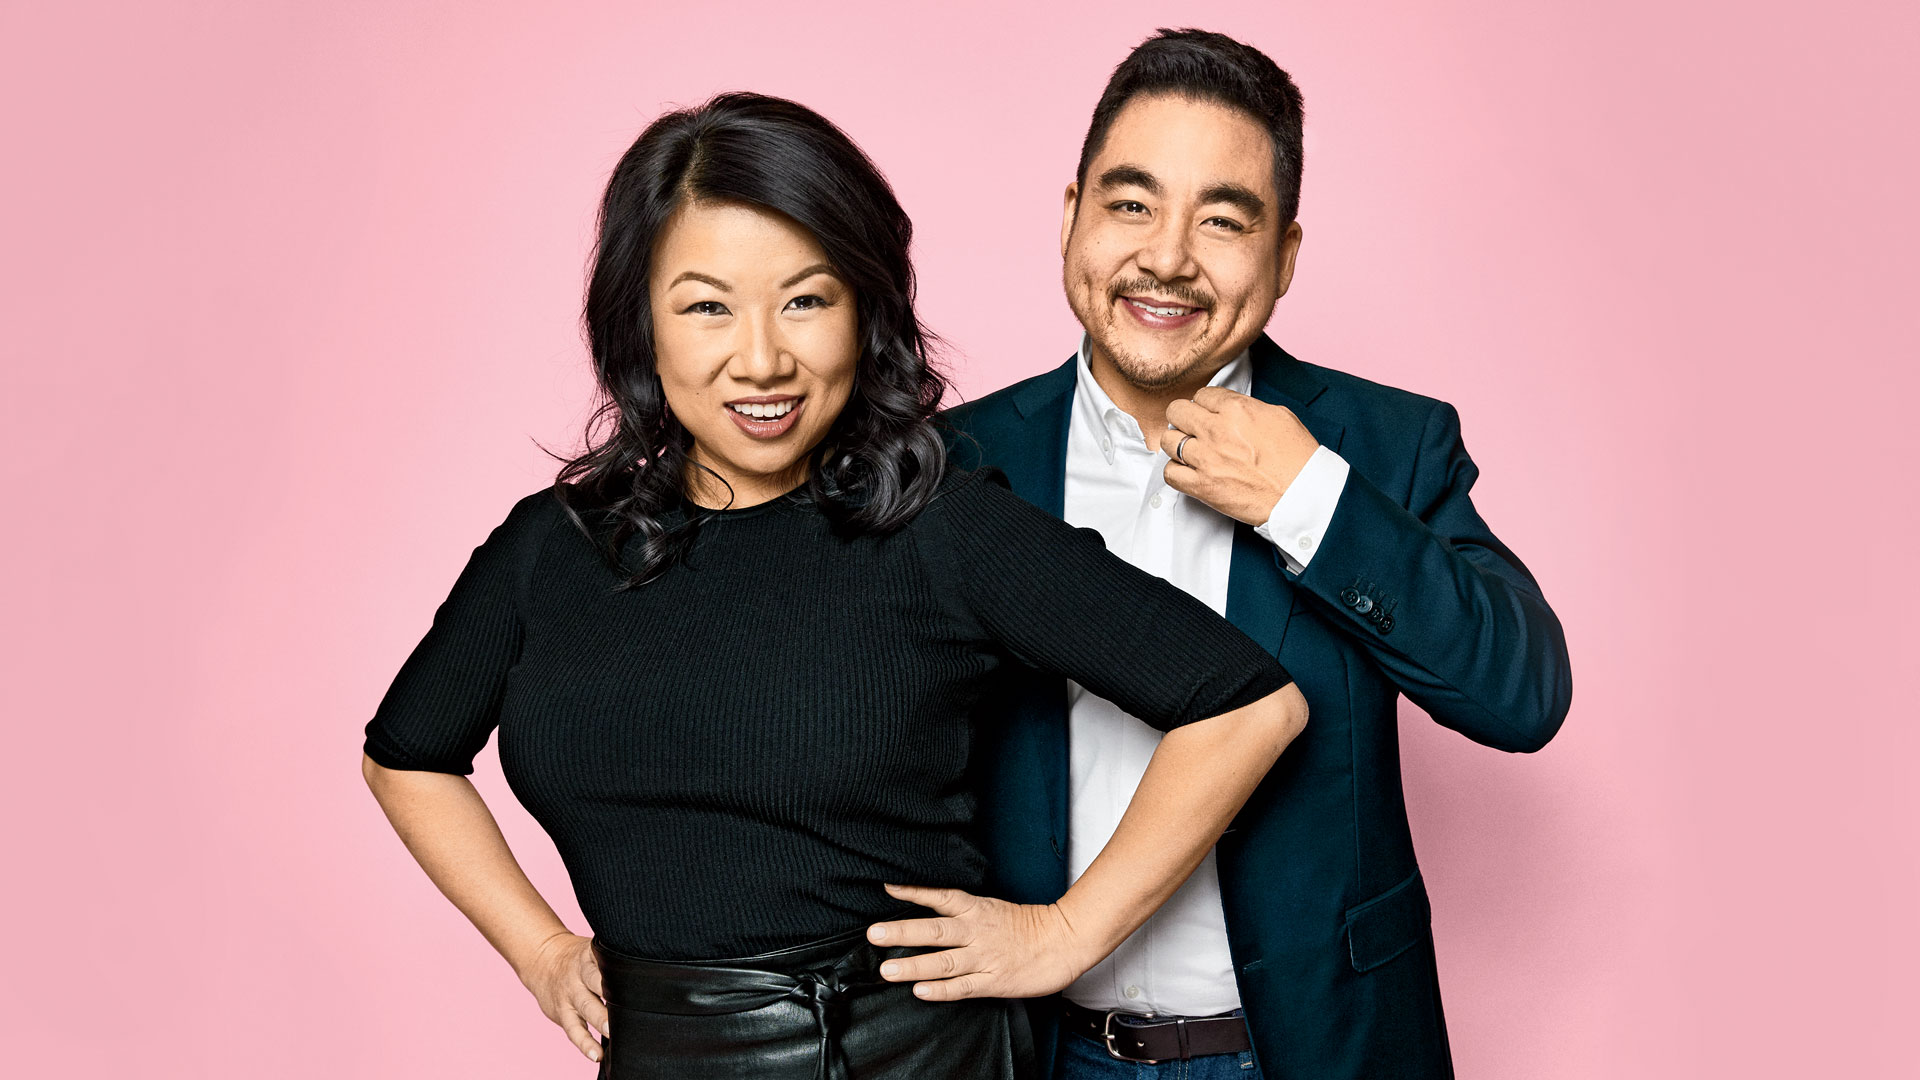 Zola cofounders Shan-Lyn Ma and Nobu Nakaguchi. [Photo: Aaron Richter]